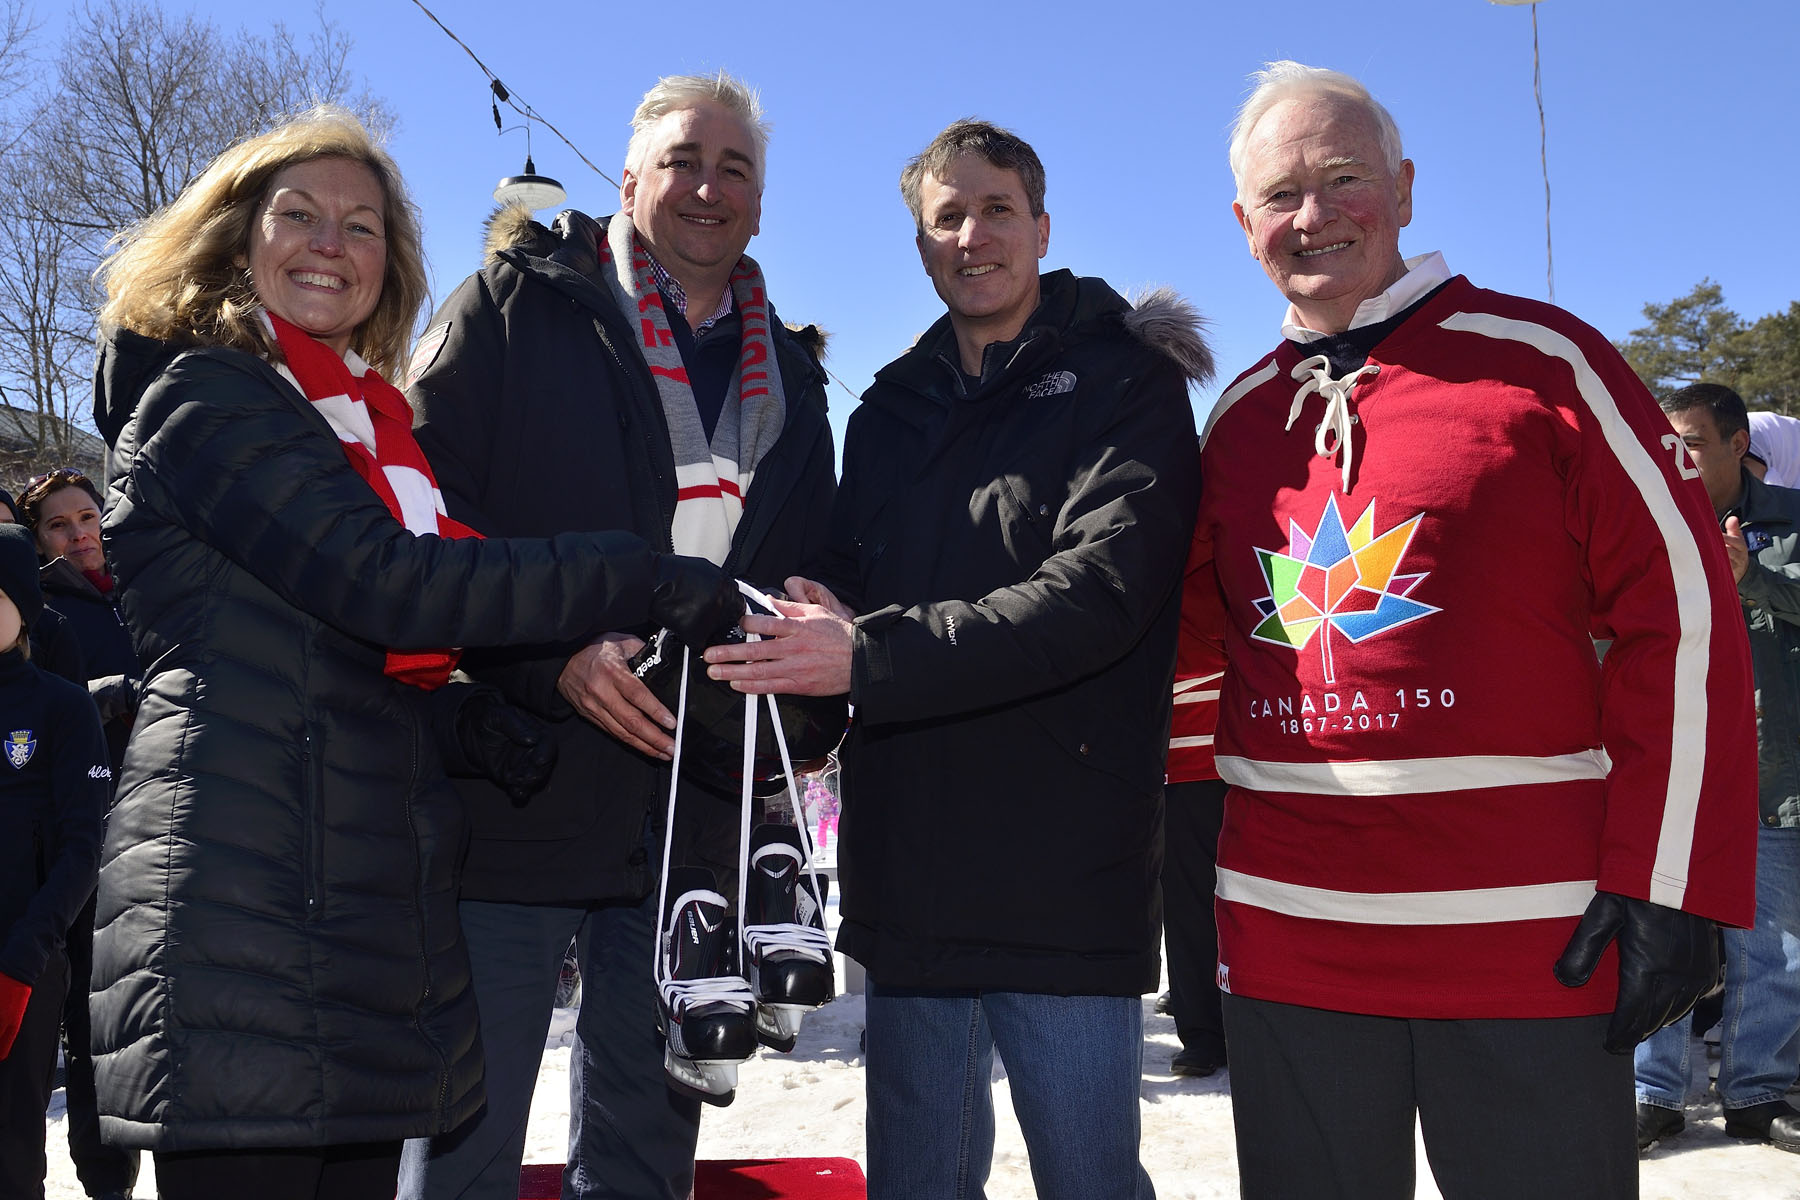 Mr. Erich Forler, president of the Board of Directors of the Minto Skating Club received the first Skate Bank from Ms. Debra Armstrong, Chief Executive Officer of Skate Canada and Mr. Dale Hooper, Chief Brand Officer of Rogers Communications. A skate bank of skates and helmets will be donated to skating communities that will take part in the Canada 150 Skating Day program across the country.